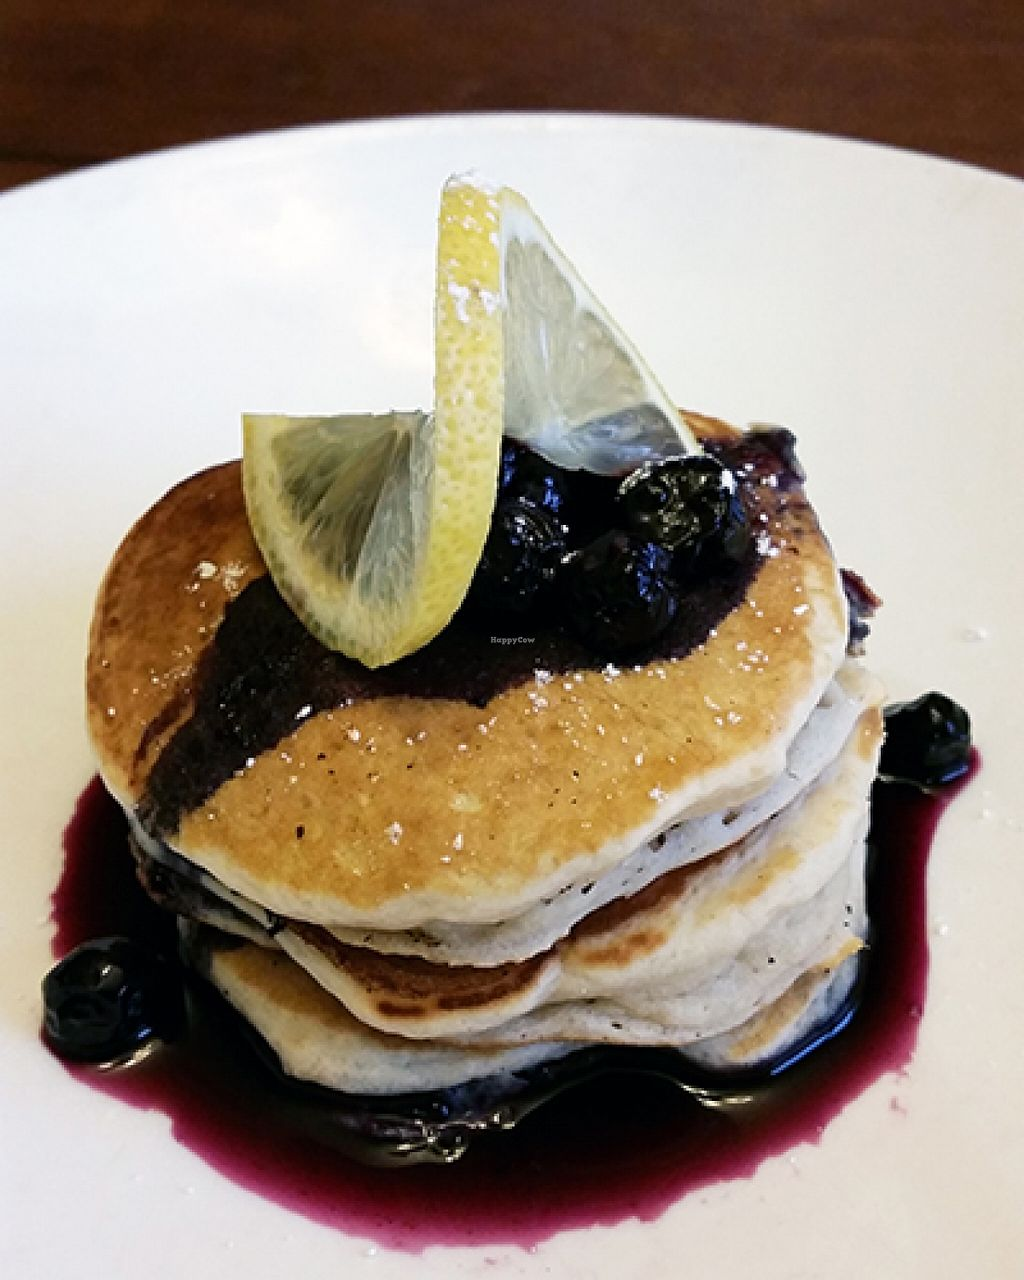 """Photo of A Broken Angel - Food Cart  by <a href=""""/members/profile/Beezelbarb"""">Beezelbarb</a> <br/>silver dollar pancakes with blueberry syrup <br/> March 13, 2016  - <a href='/contact/abuse/image/70816/139901'>Report</a>"""